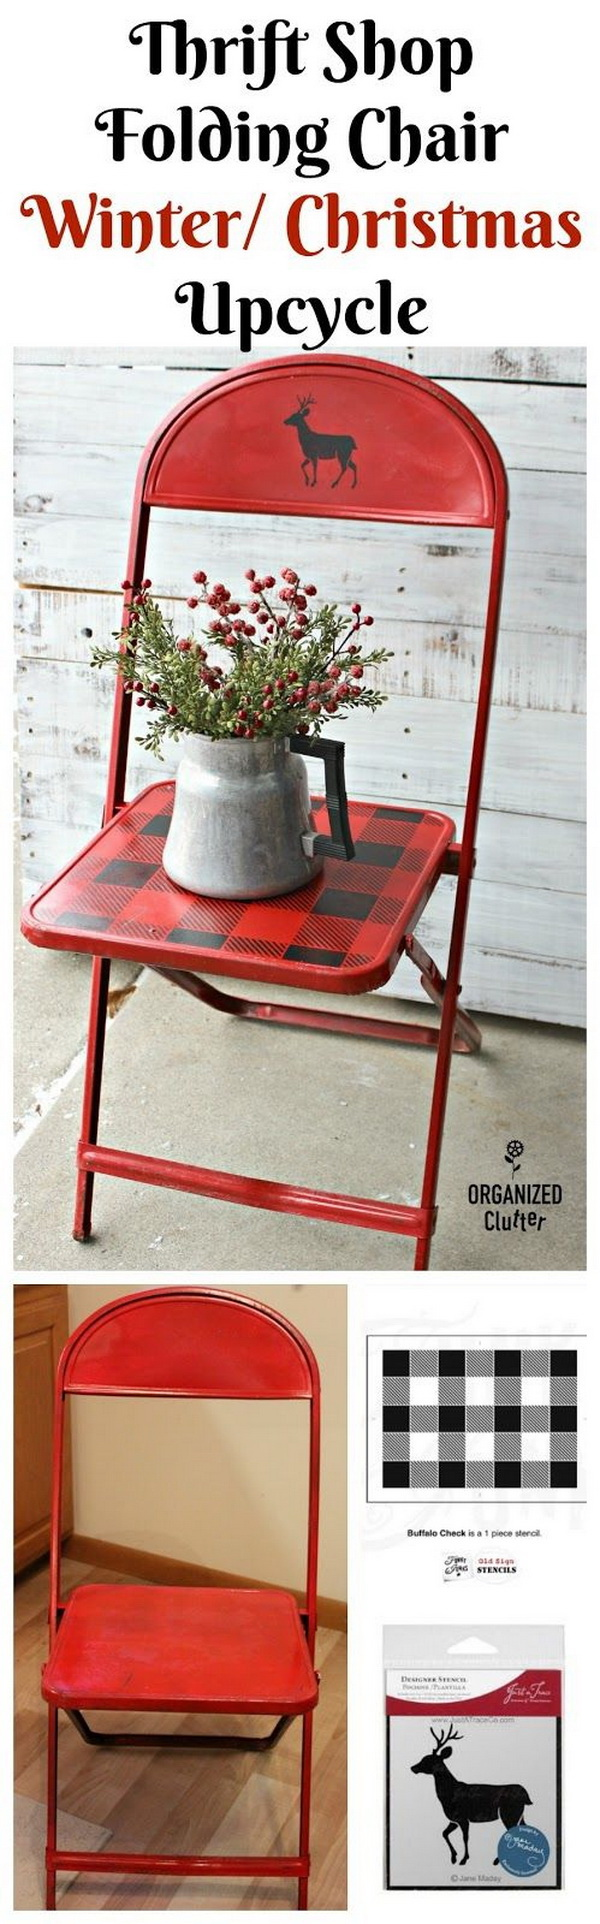 Thrift Shop Vintage Child's Metal Folding Chair Christmas Upcycle.